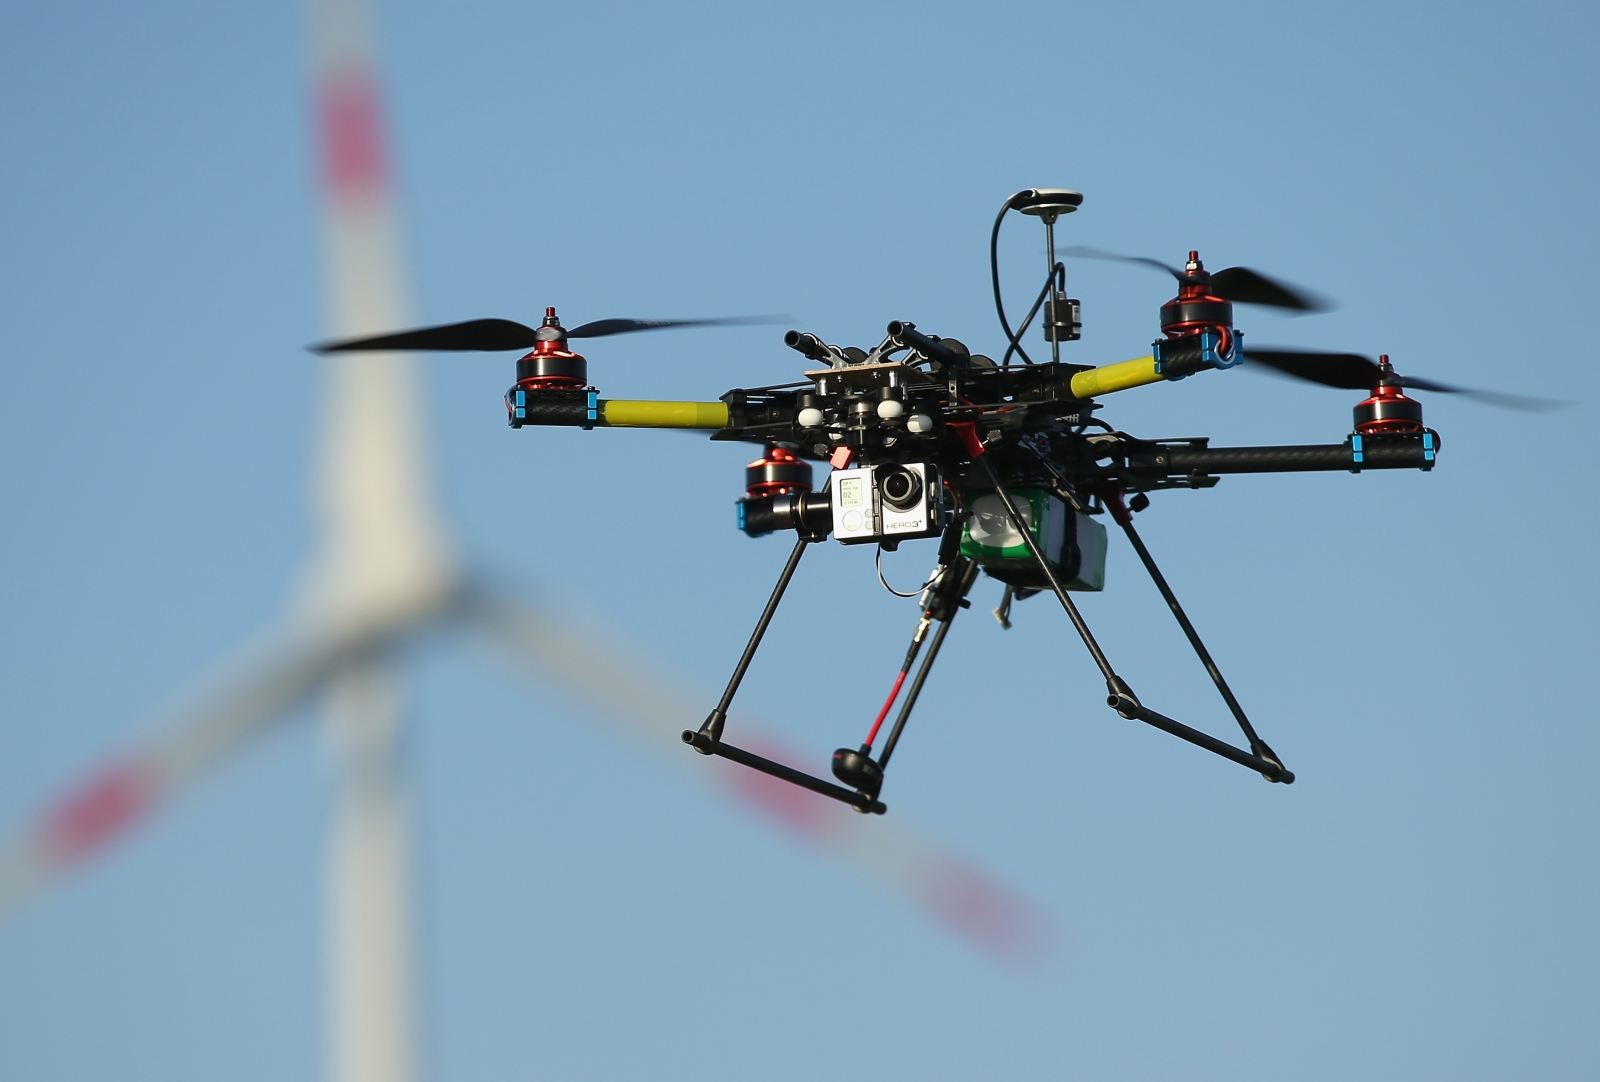 How can we improve drone safety?